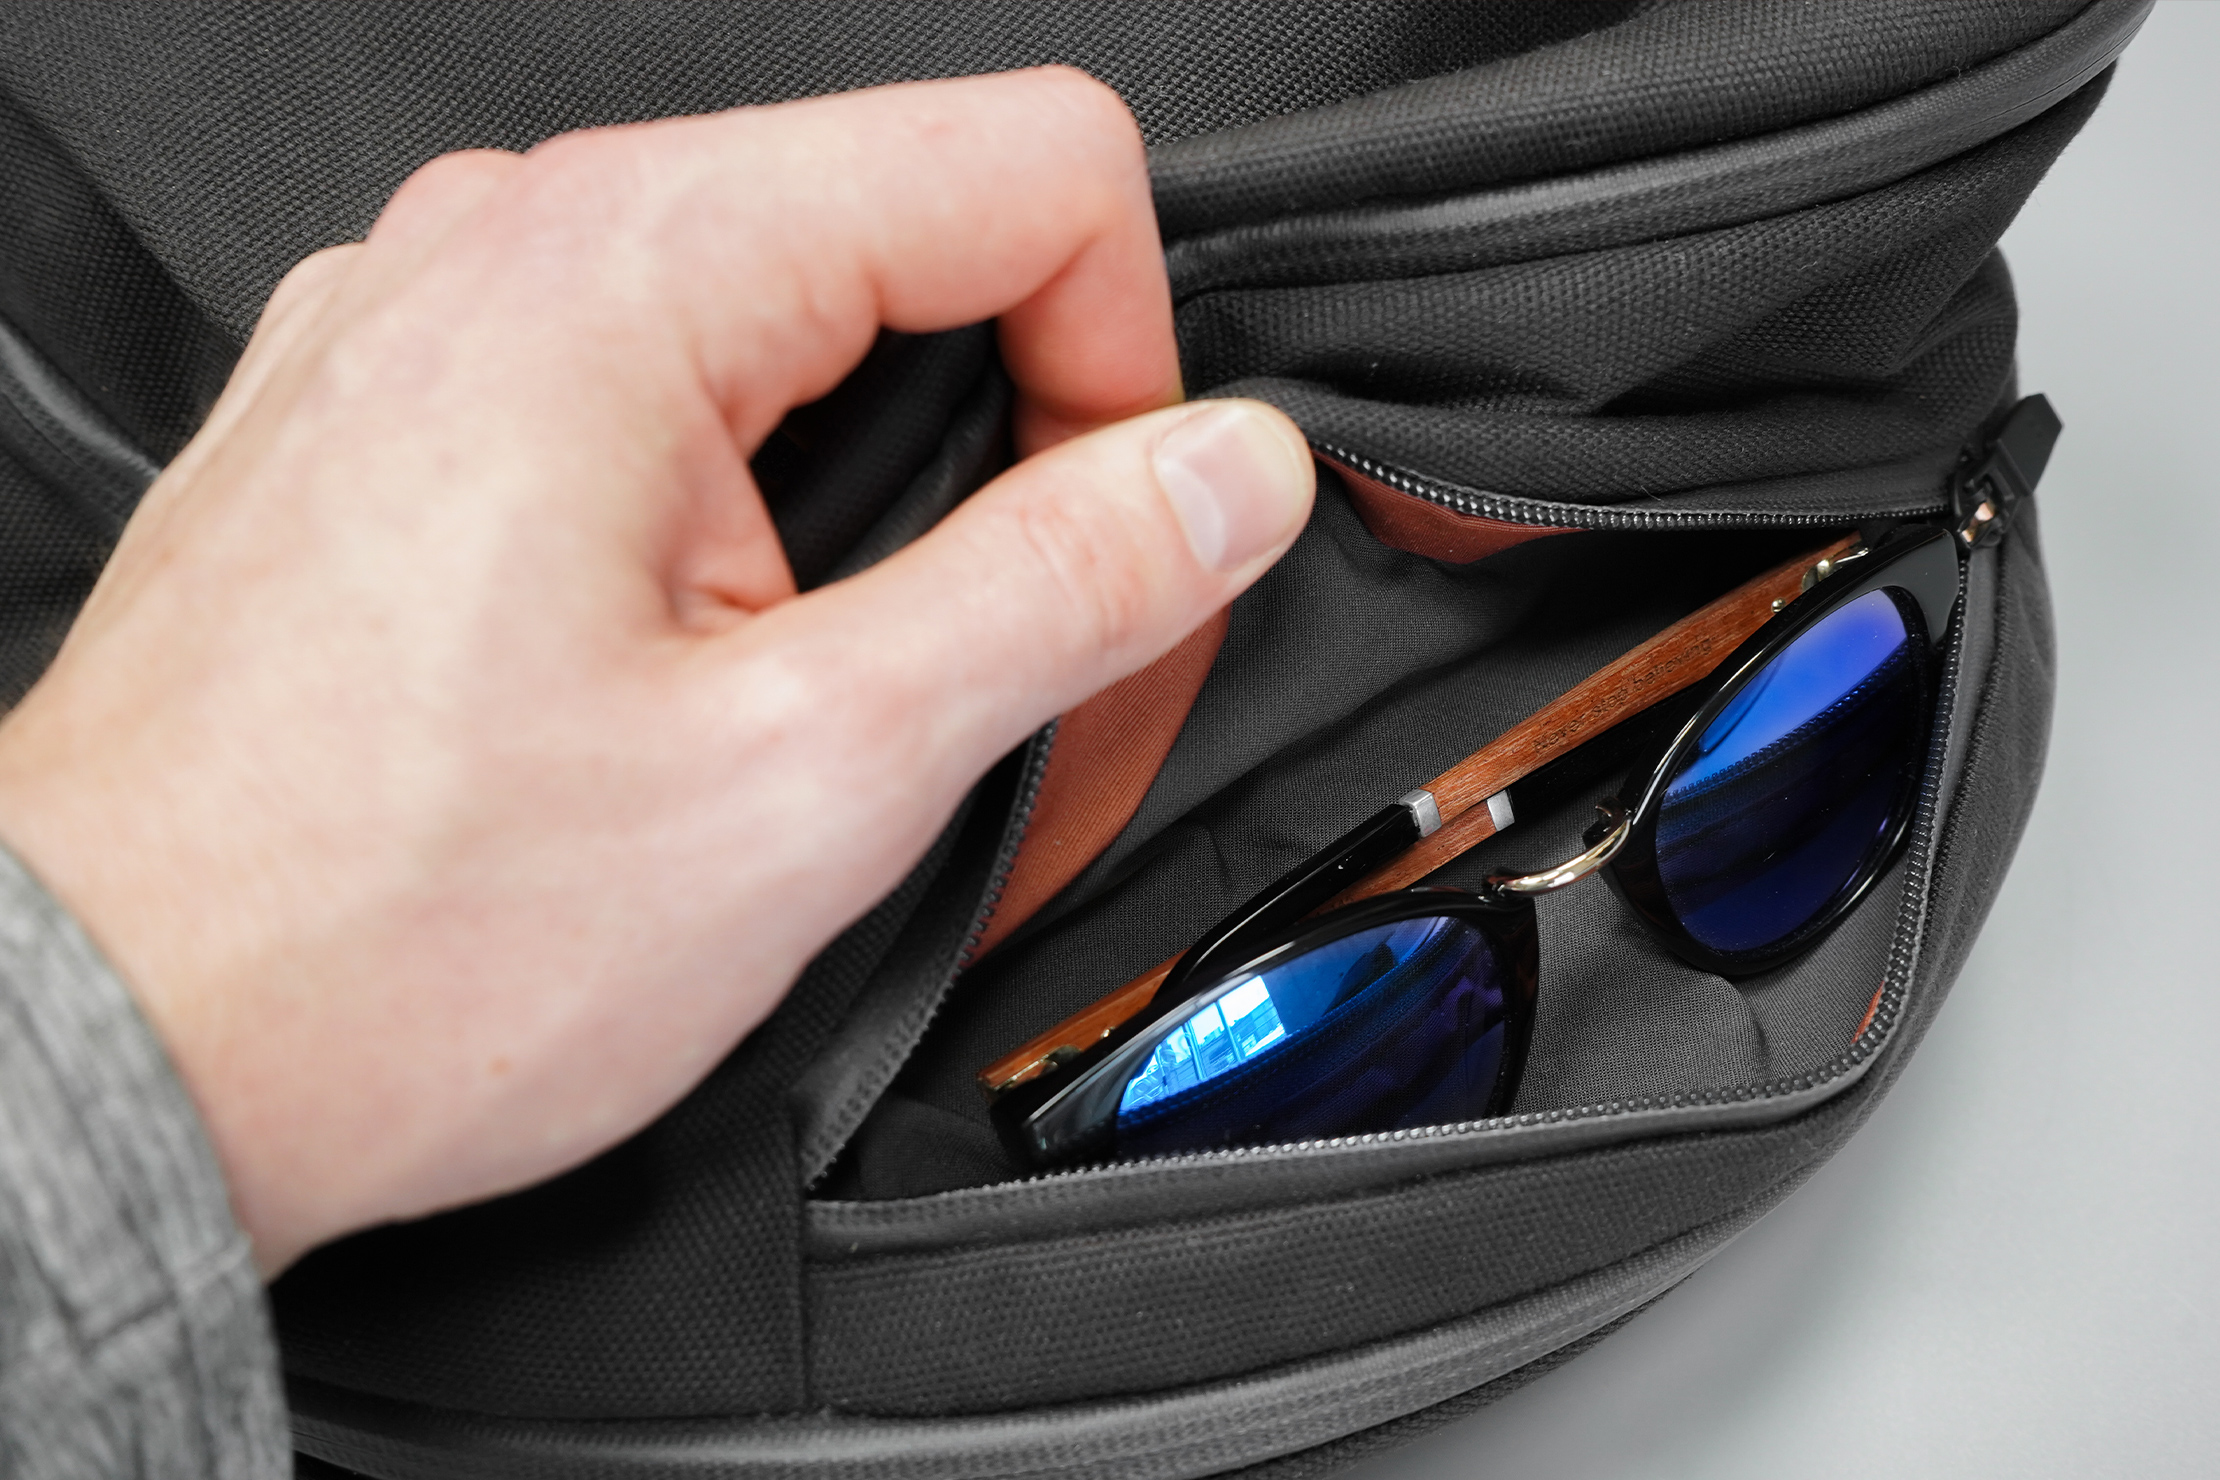 Bellroy Transit Workpack | Your sunglasses are safe from scratches in this top pocket